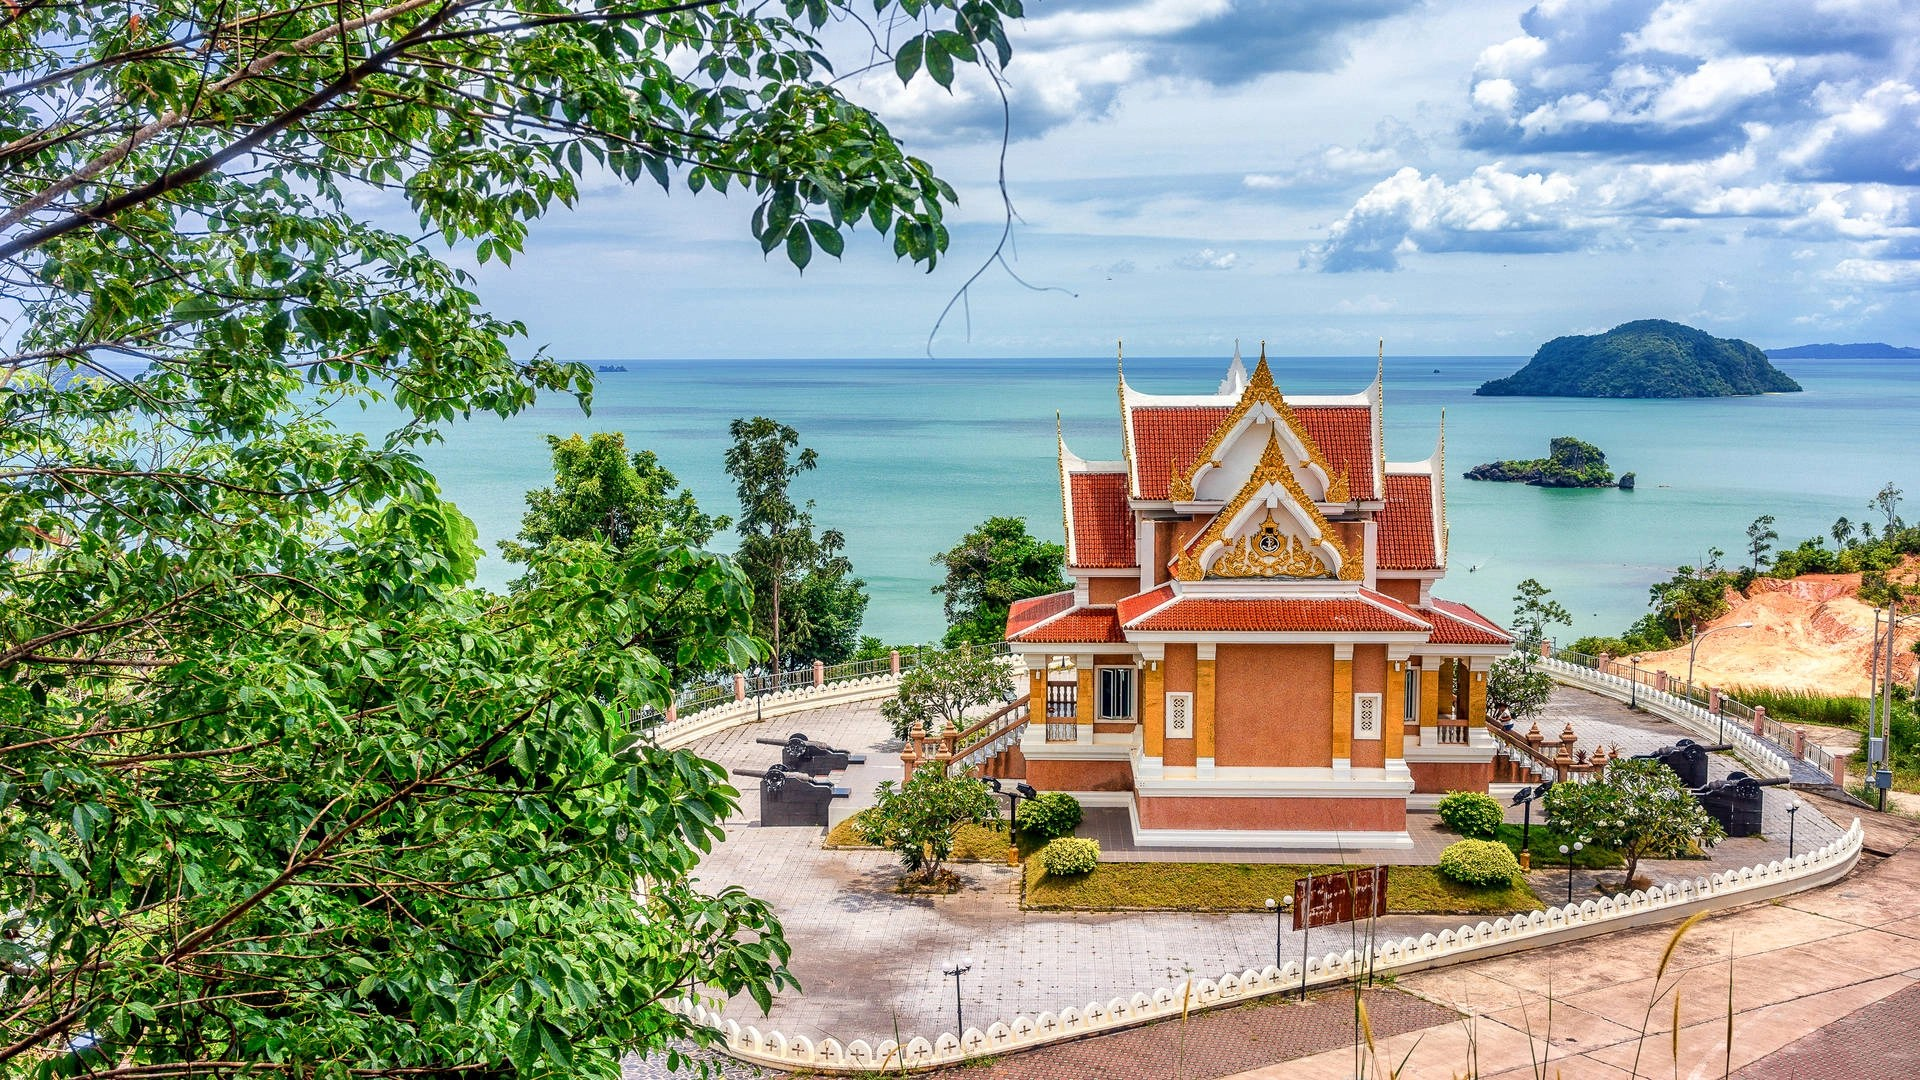 The treasures of little-known Chumphon